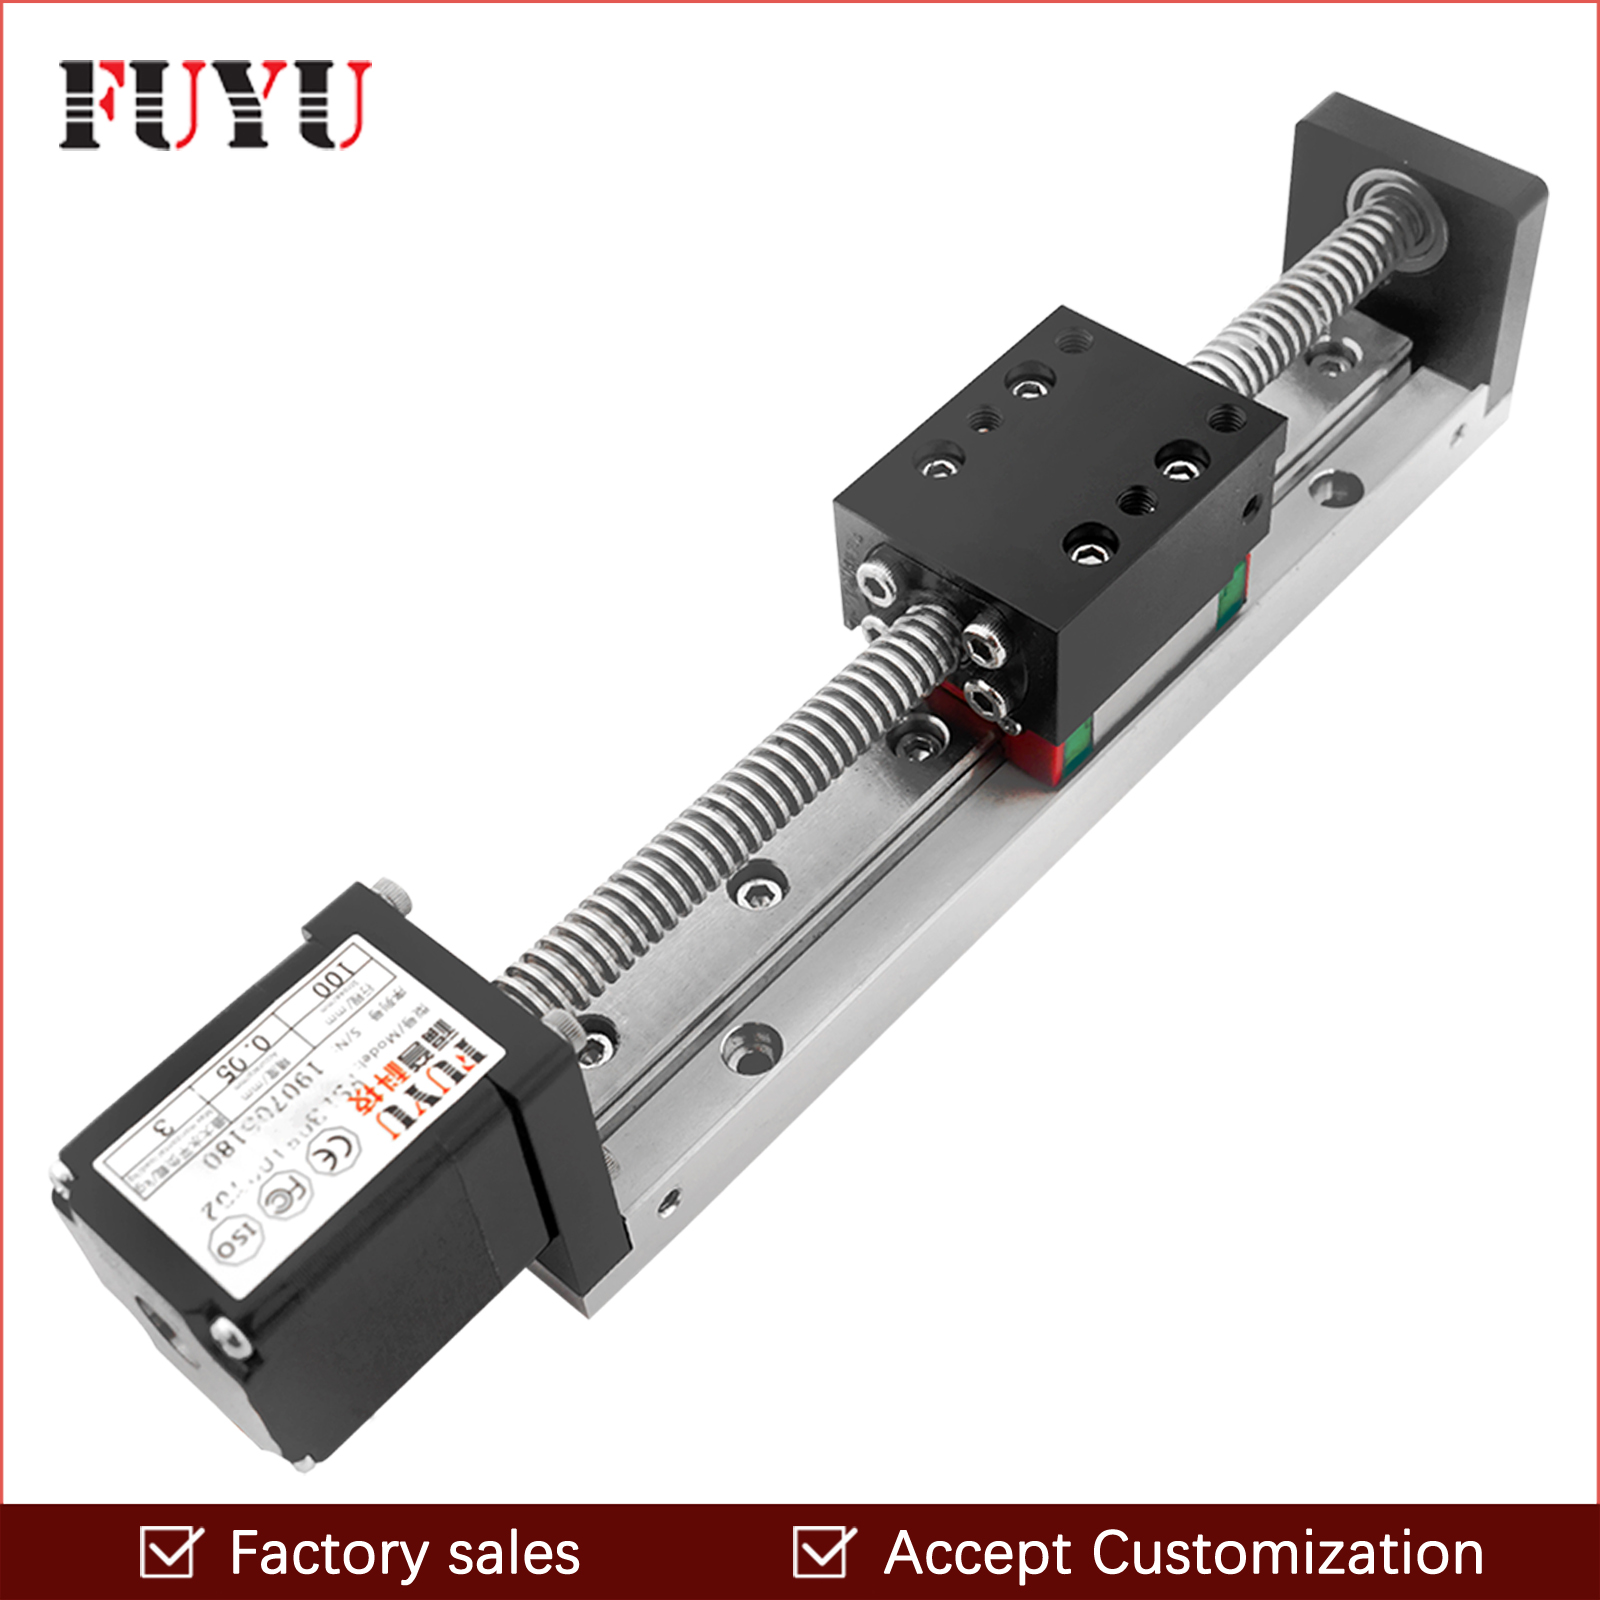 2 LINEAR ACTUATOR SCREW DRIVE STEPPER MOTOR 8/'/' TRAVEL.